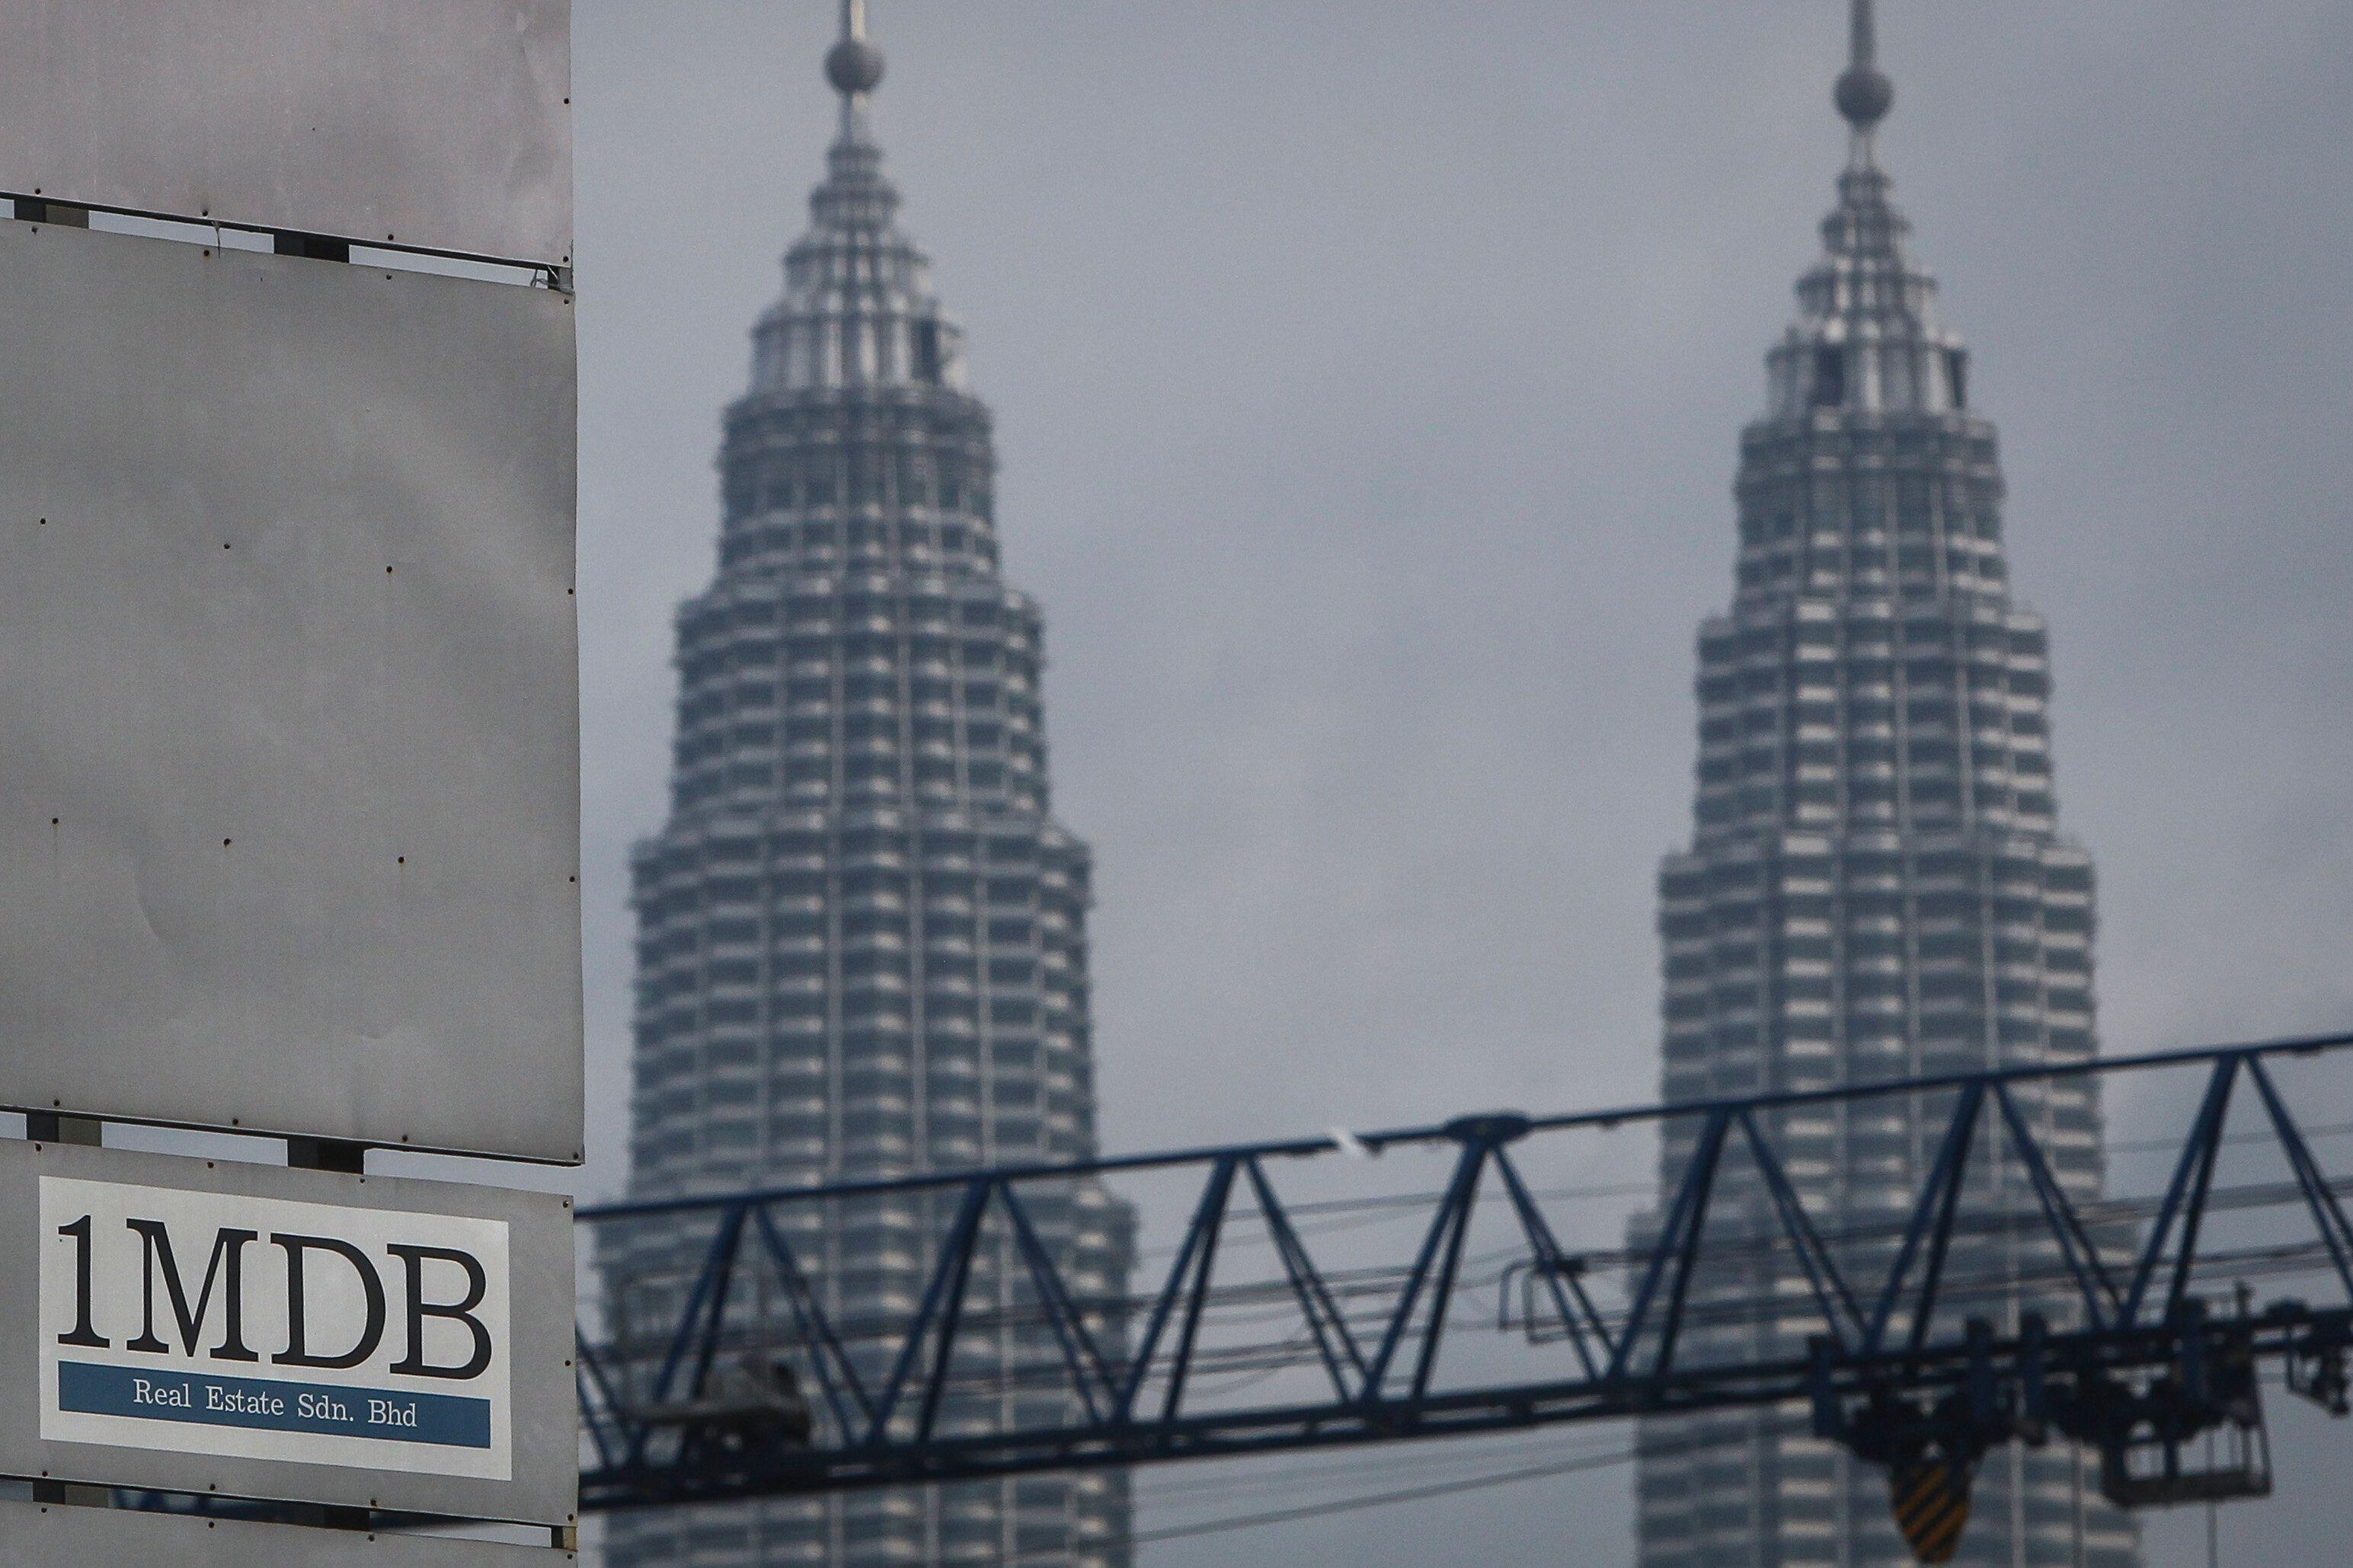 Singapore to send 1MDB money from ex-Goldman banker back to Malaysia